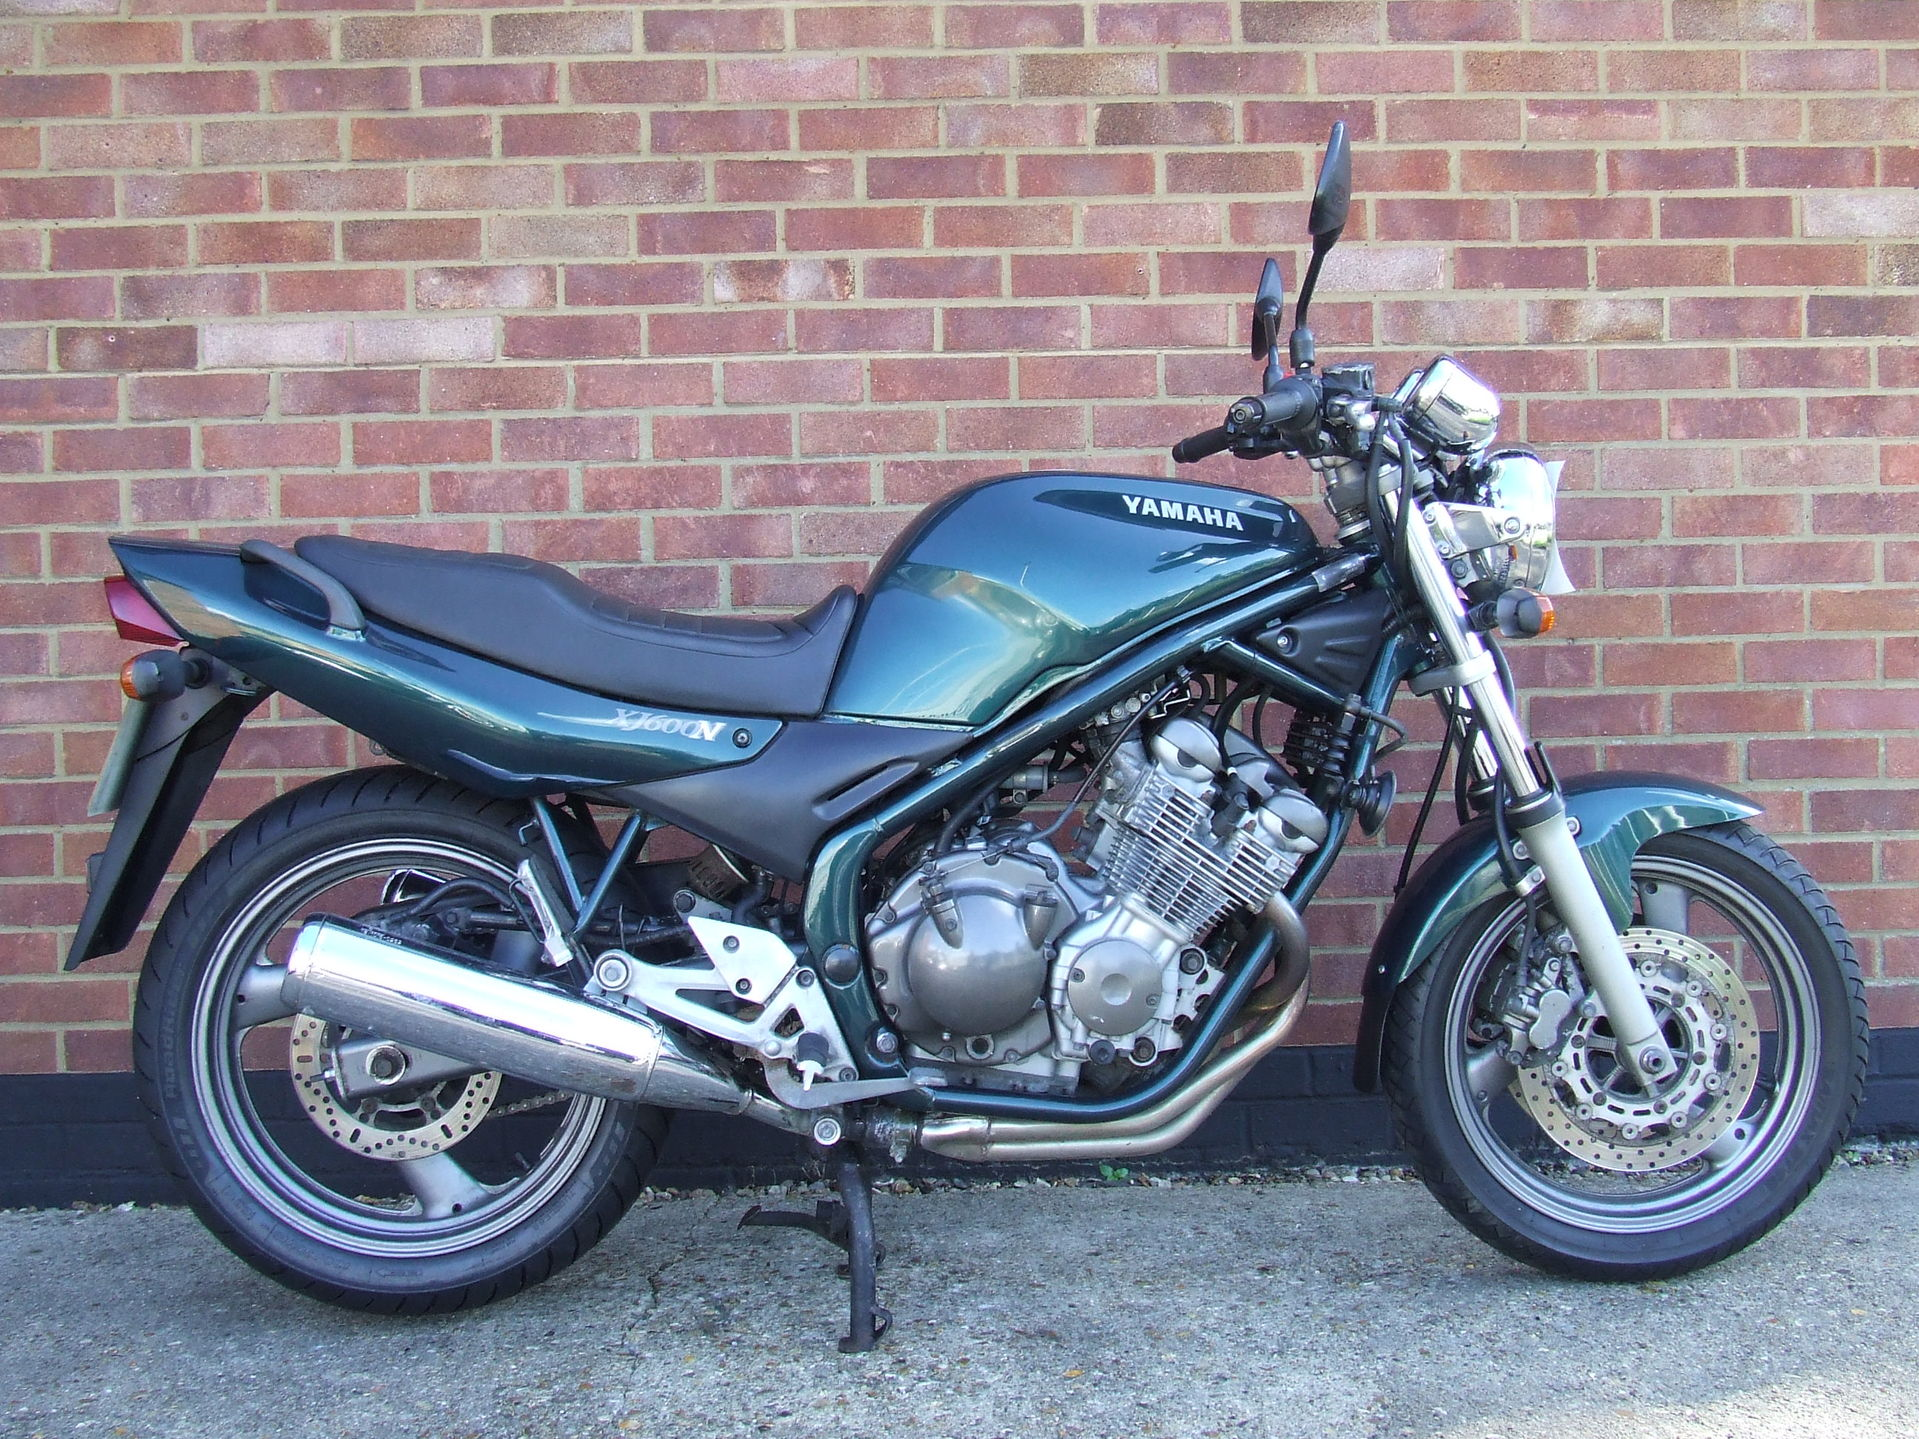 1994 yamaha xj 600 s pics specs and information. Black Bedroom Furniture Sets. Home Design Ideas